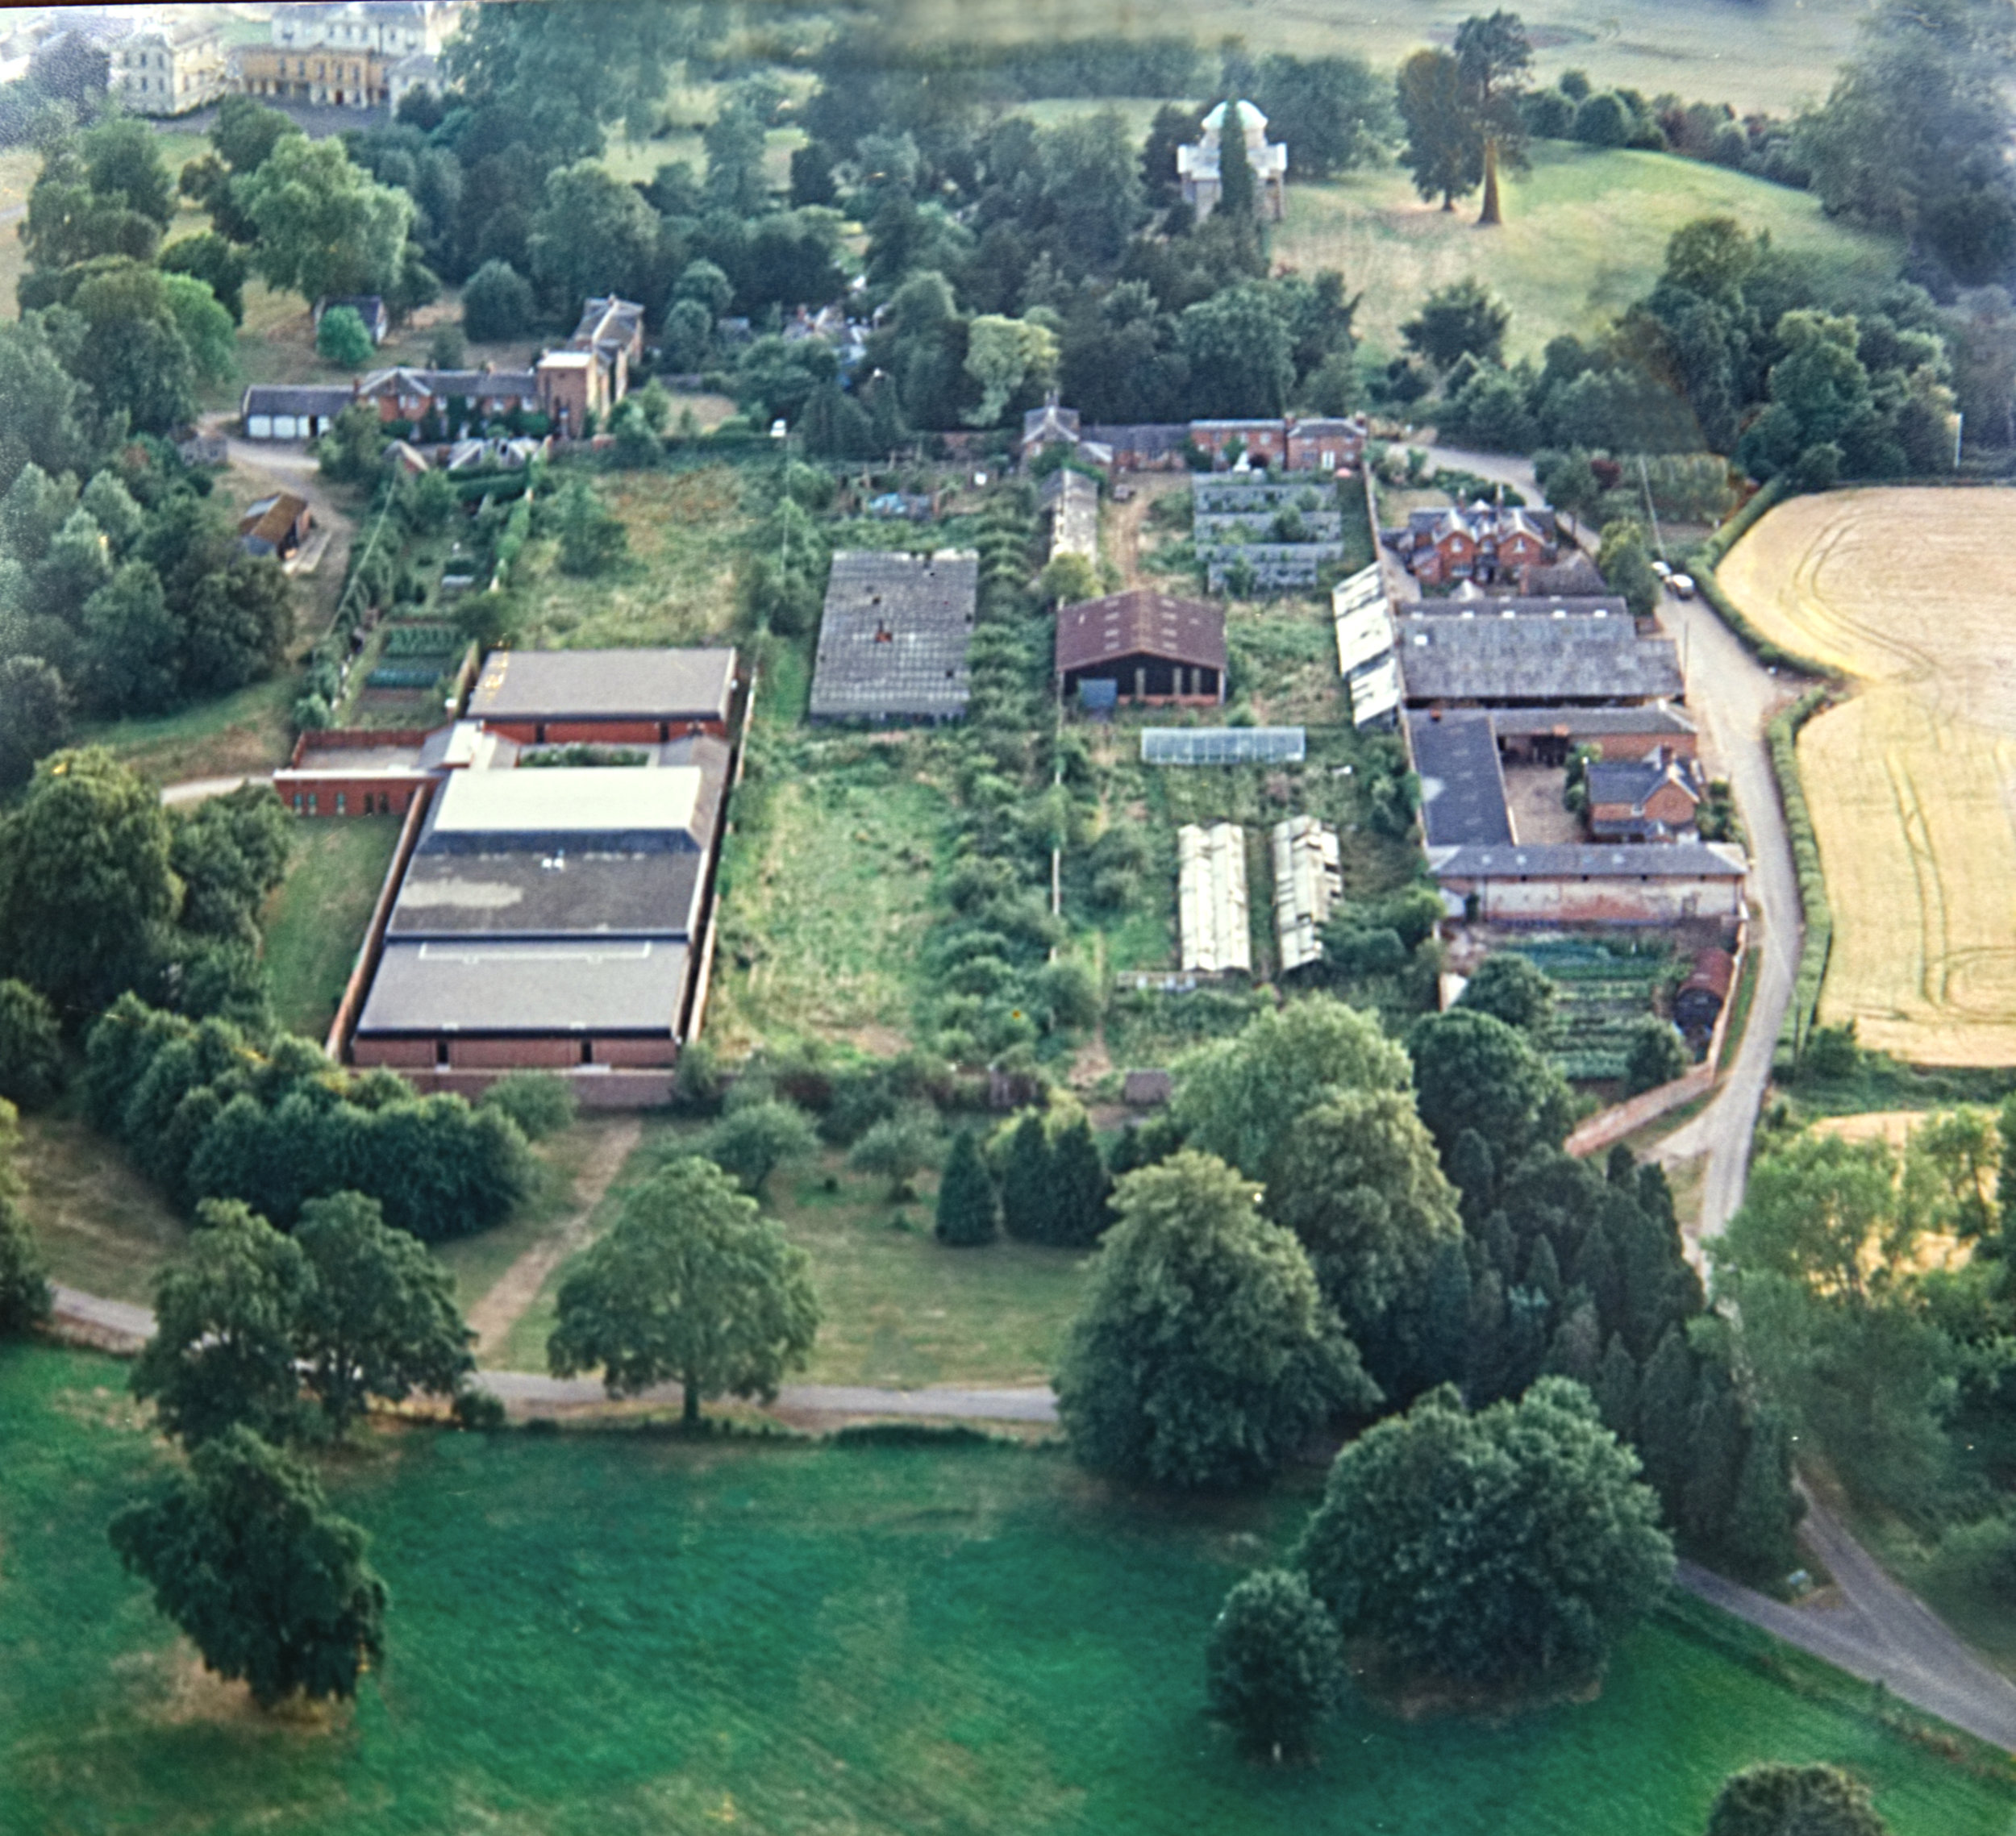 Old Aerial Photograph of the Walled Garden